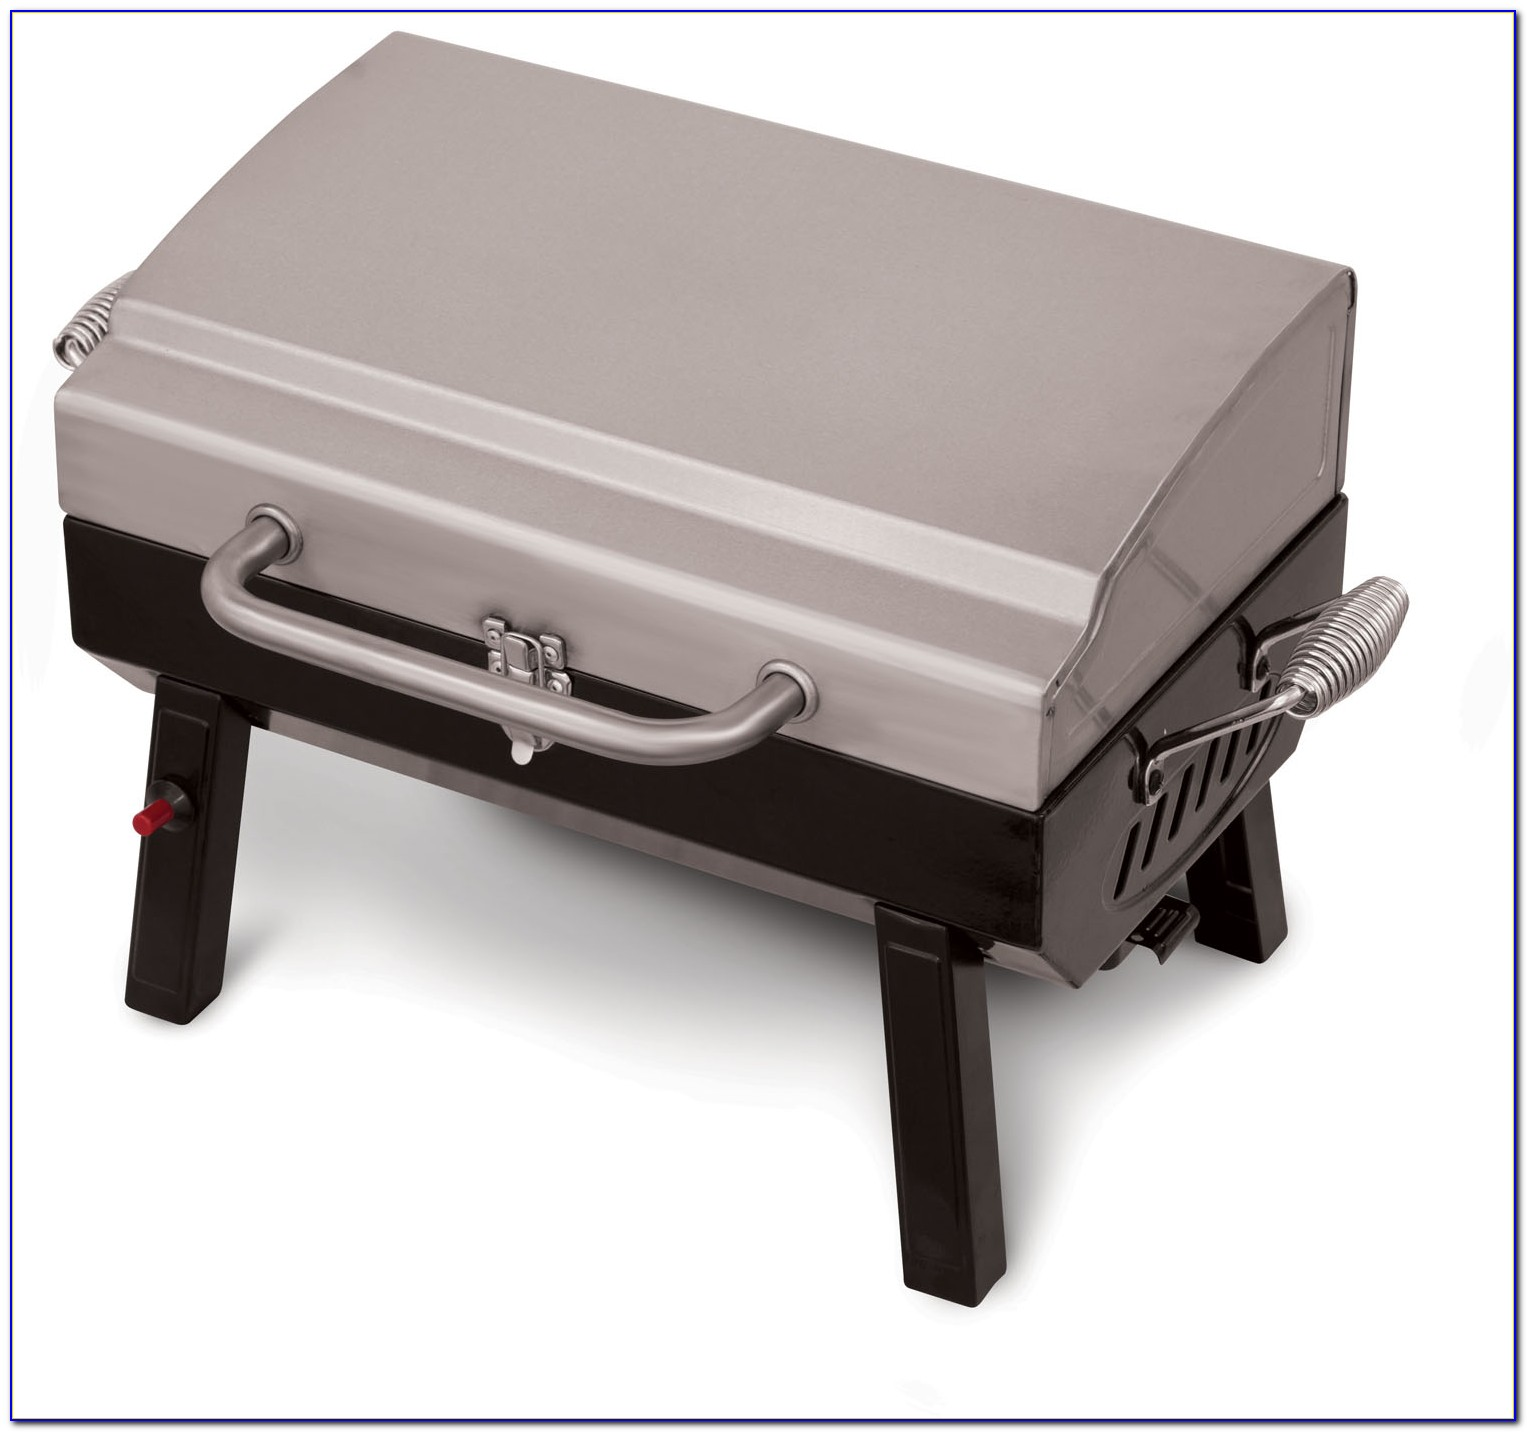 Marshallan Portable Tabletop Gas Grill